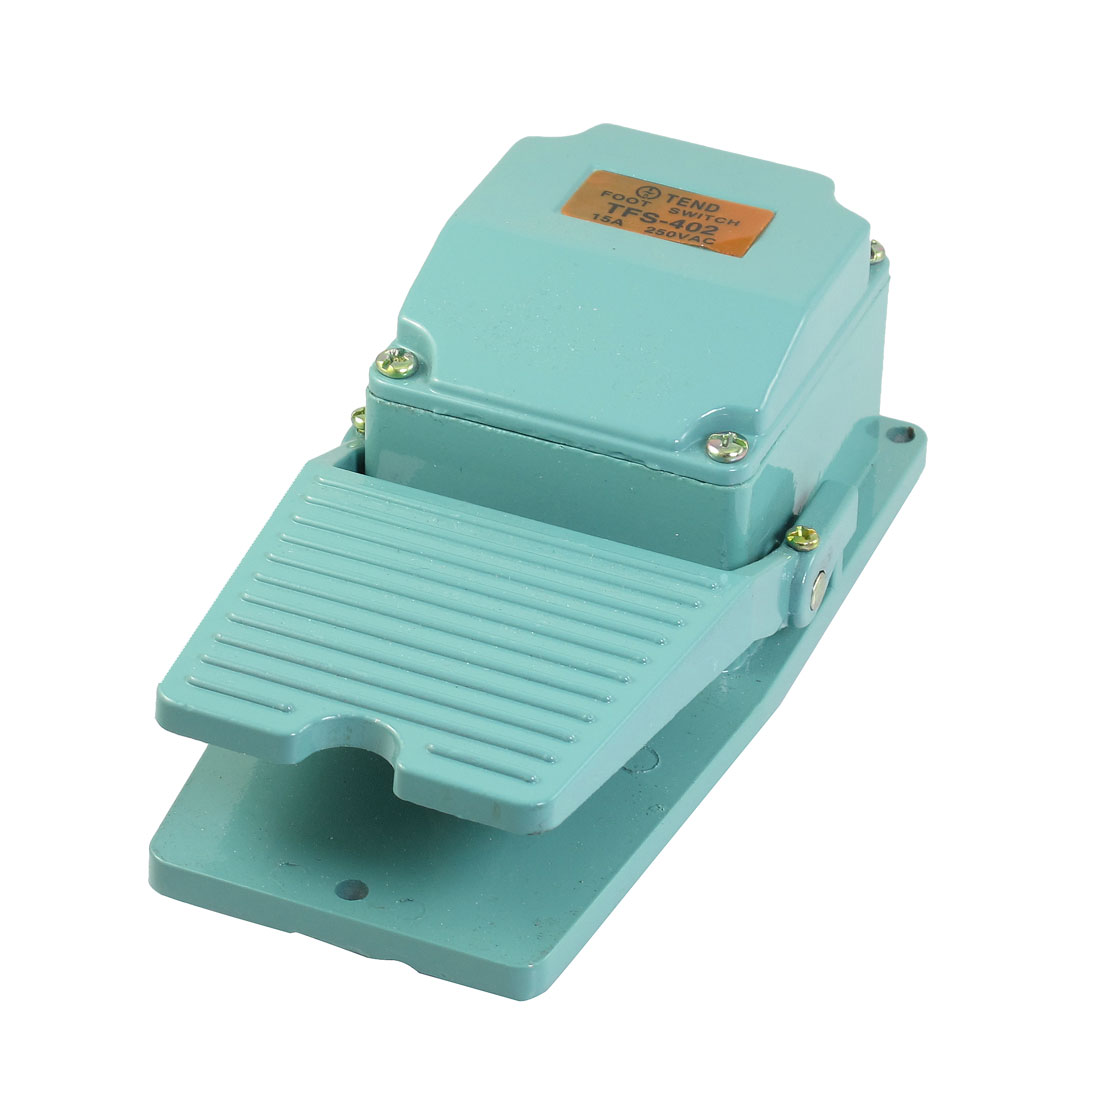 AC 250V 15A Nonslip Metal Momentary Industrial Power Stomp Foot Pedal Switch